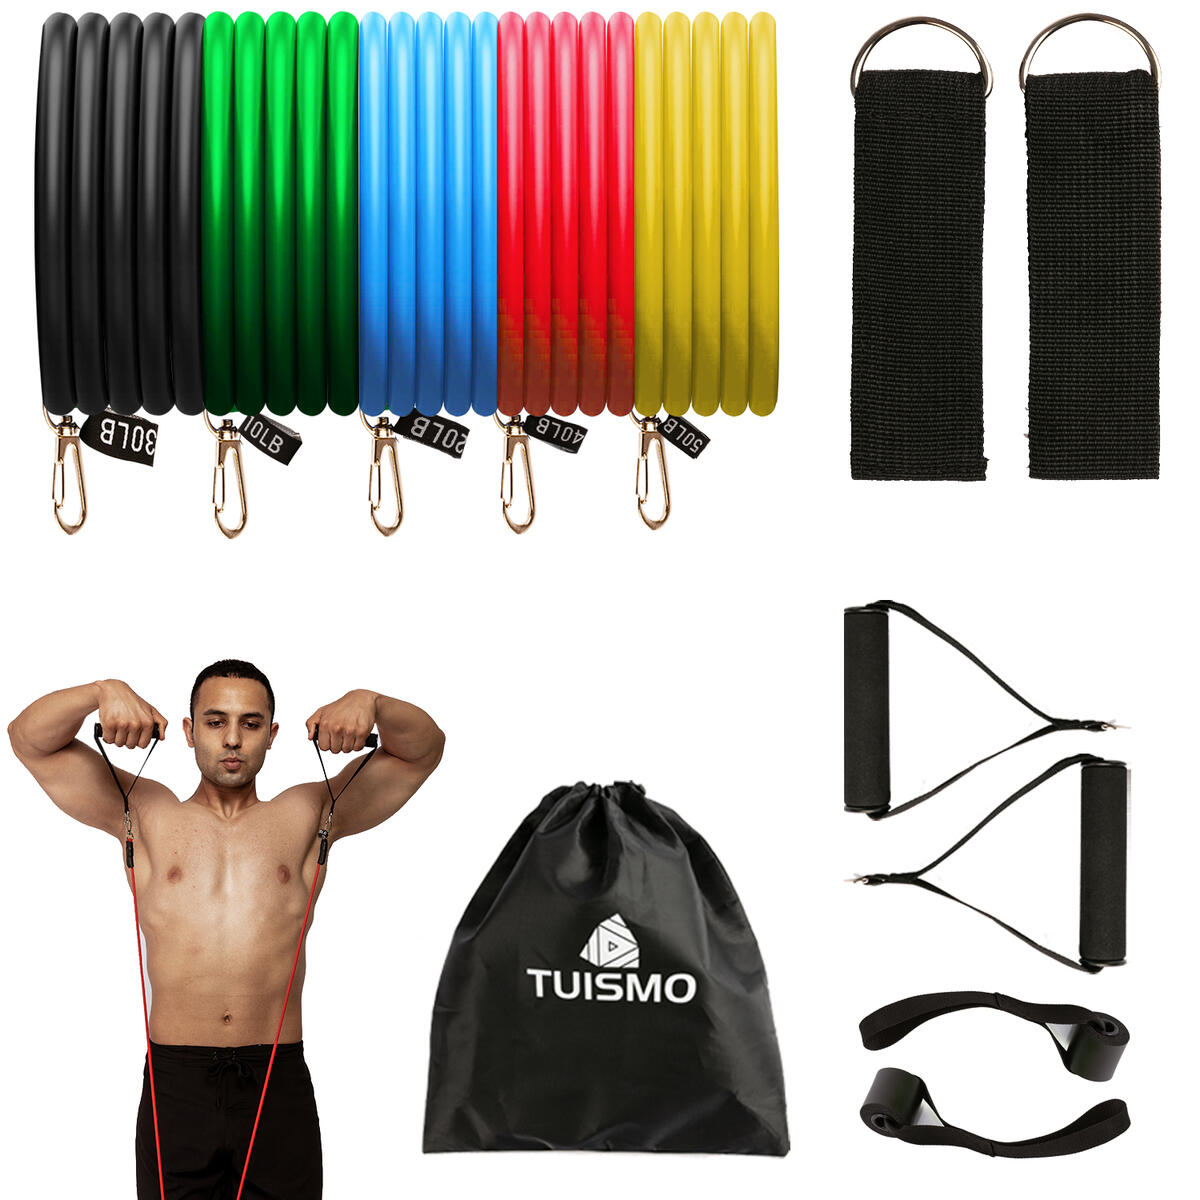 Portable Exercise Resistance Band Set| Exercise Bands with Door Anchor, Legs Ankle Straps, Handles, Waterproof Carry Bag for Resistance Training| Exercise Equipment 150LBS for Home Men Women TUISMO